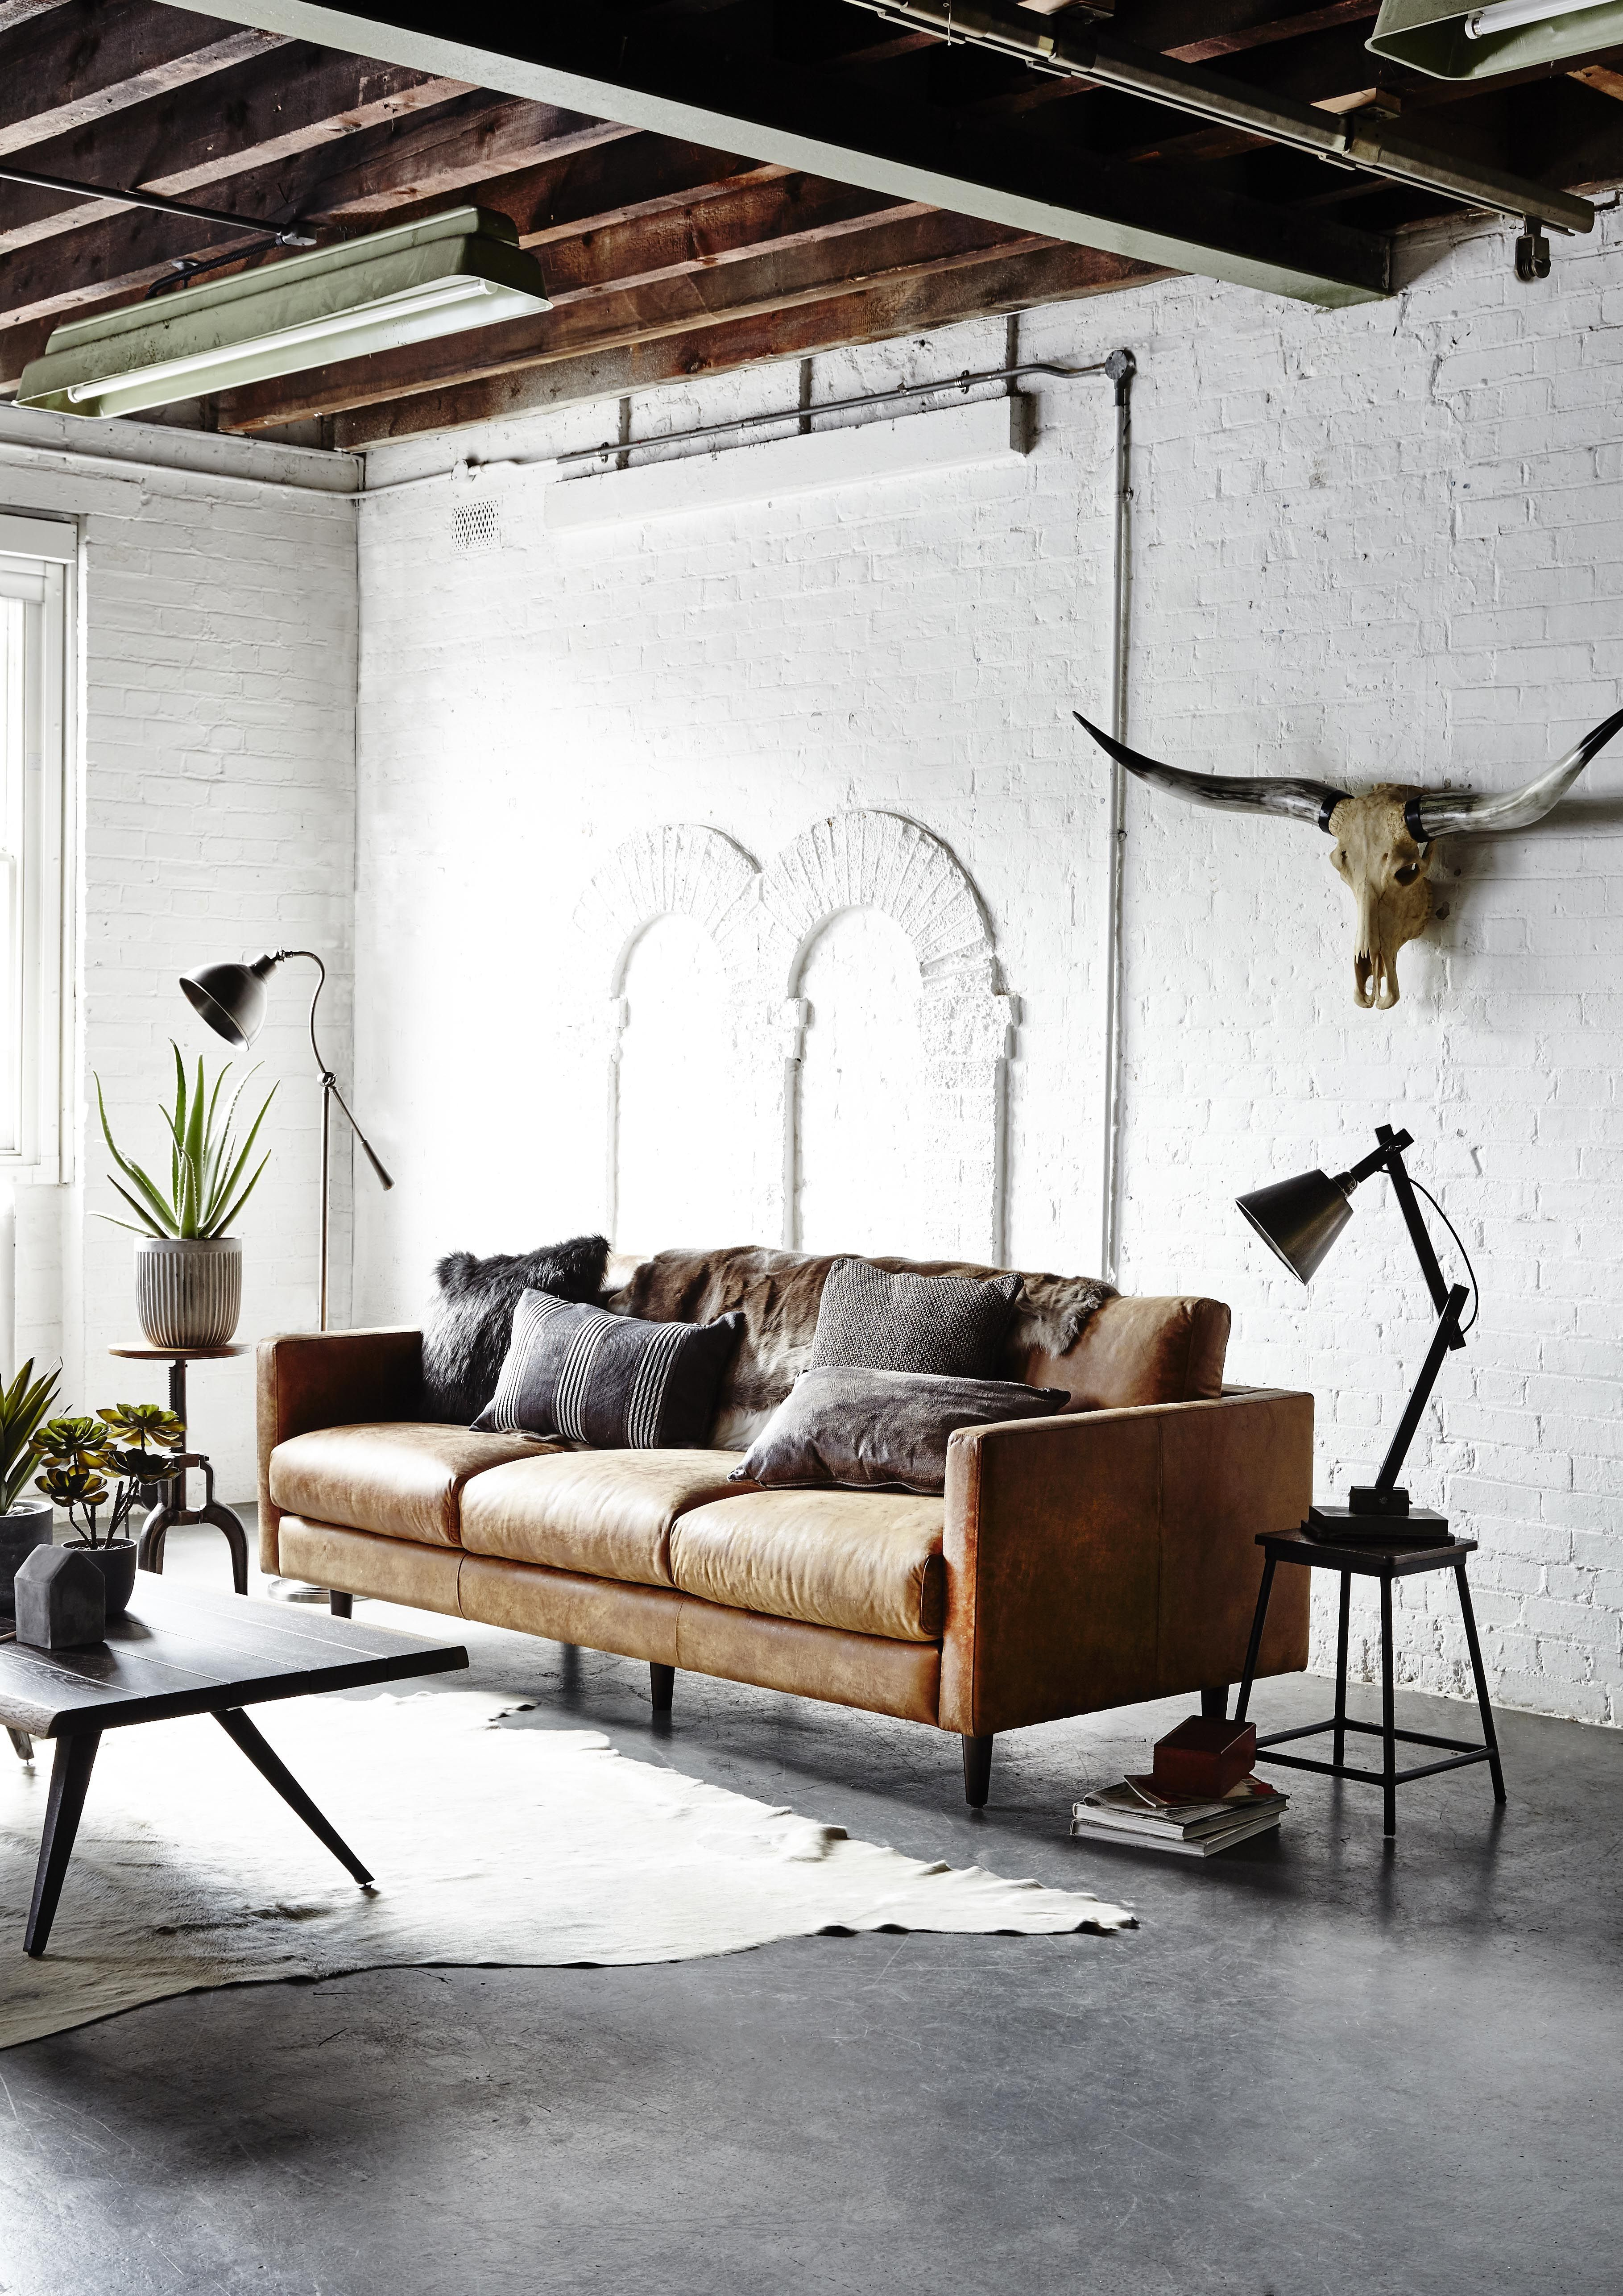 Interio Sofa Thierry Brilliant Picture Of Industrial Look Living Roomindustrial Look